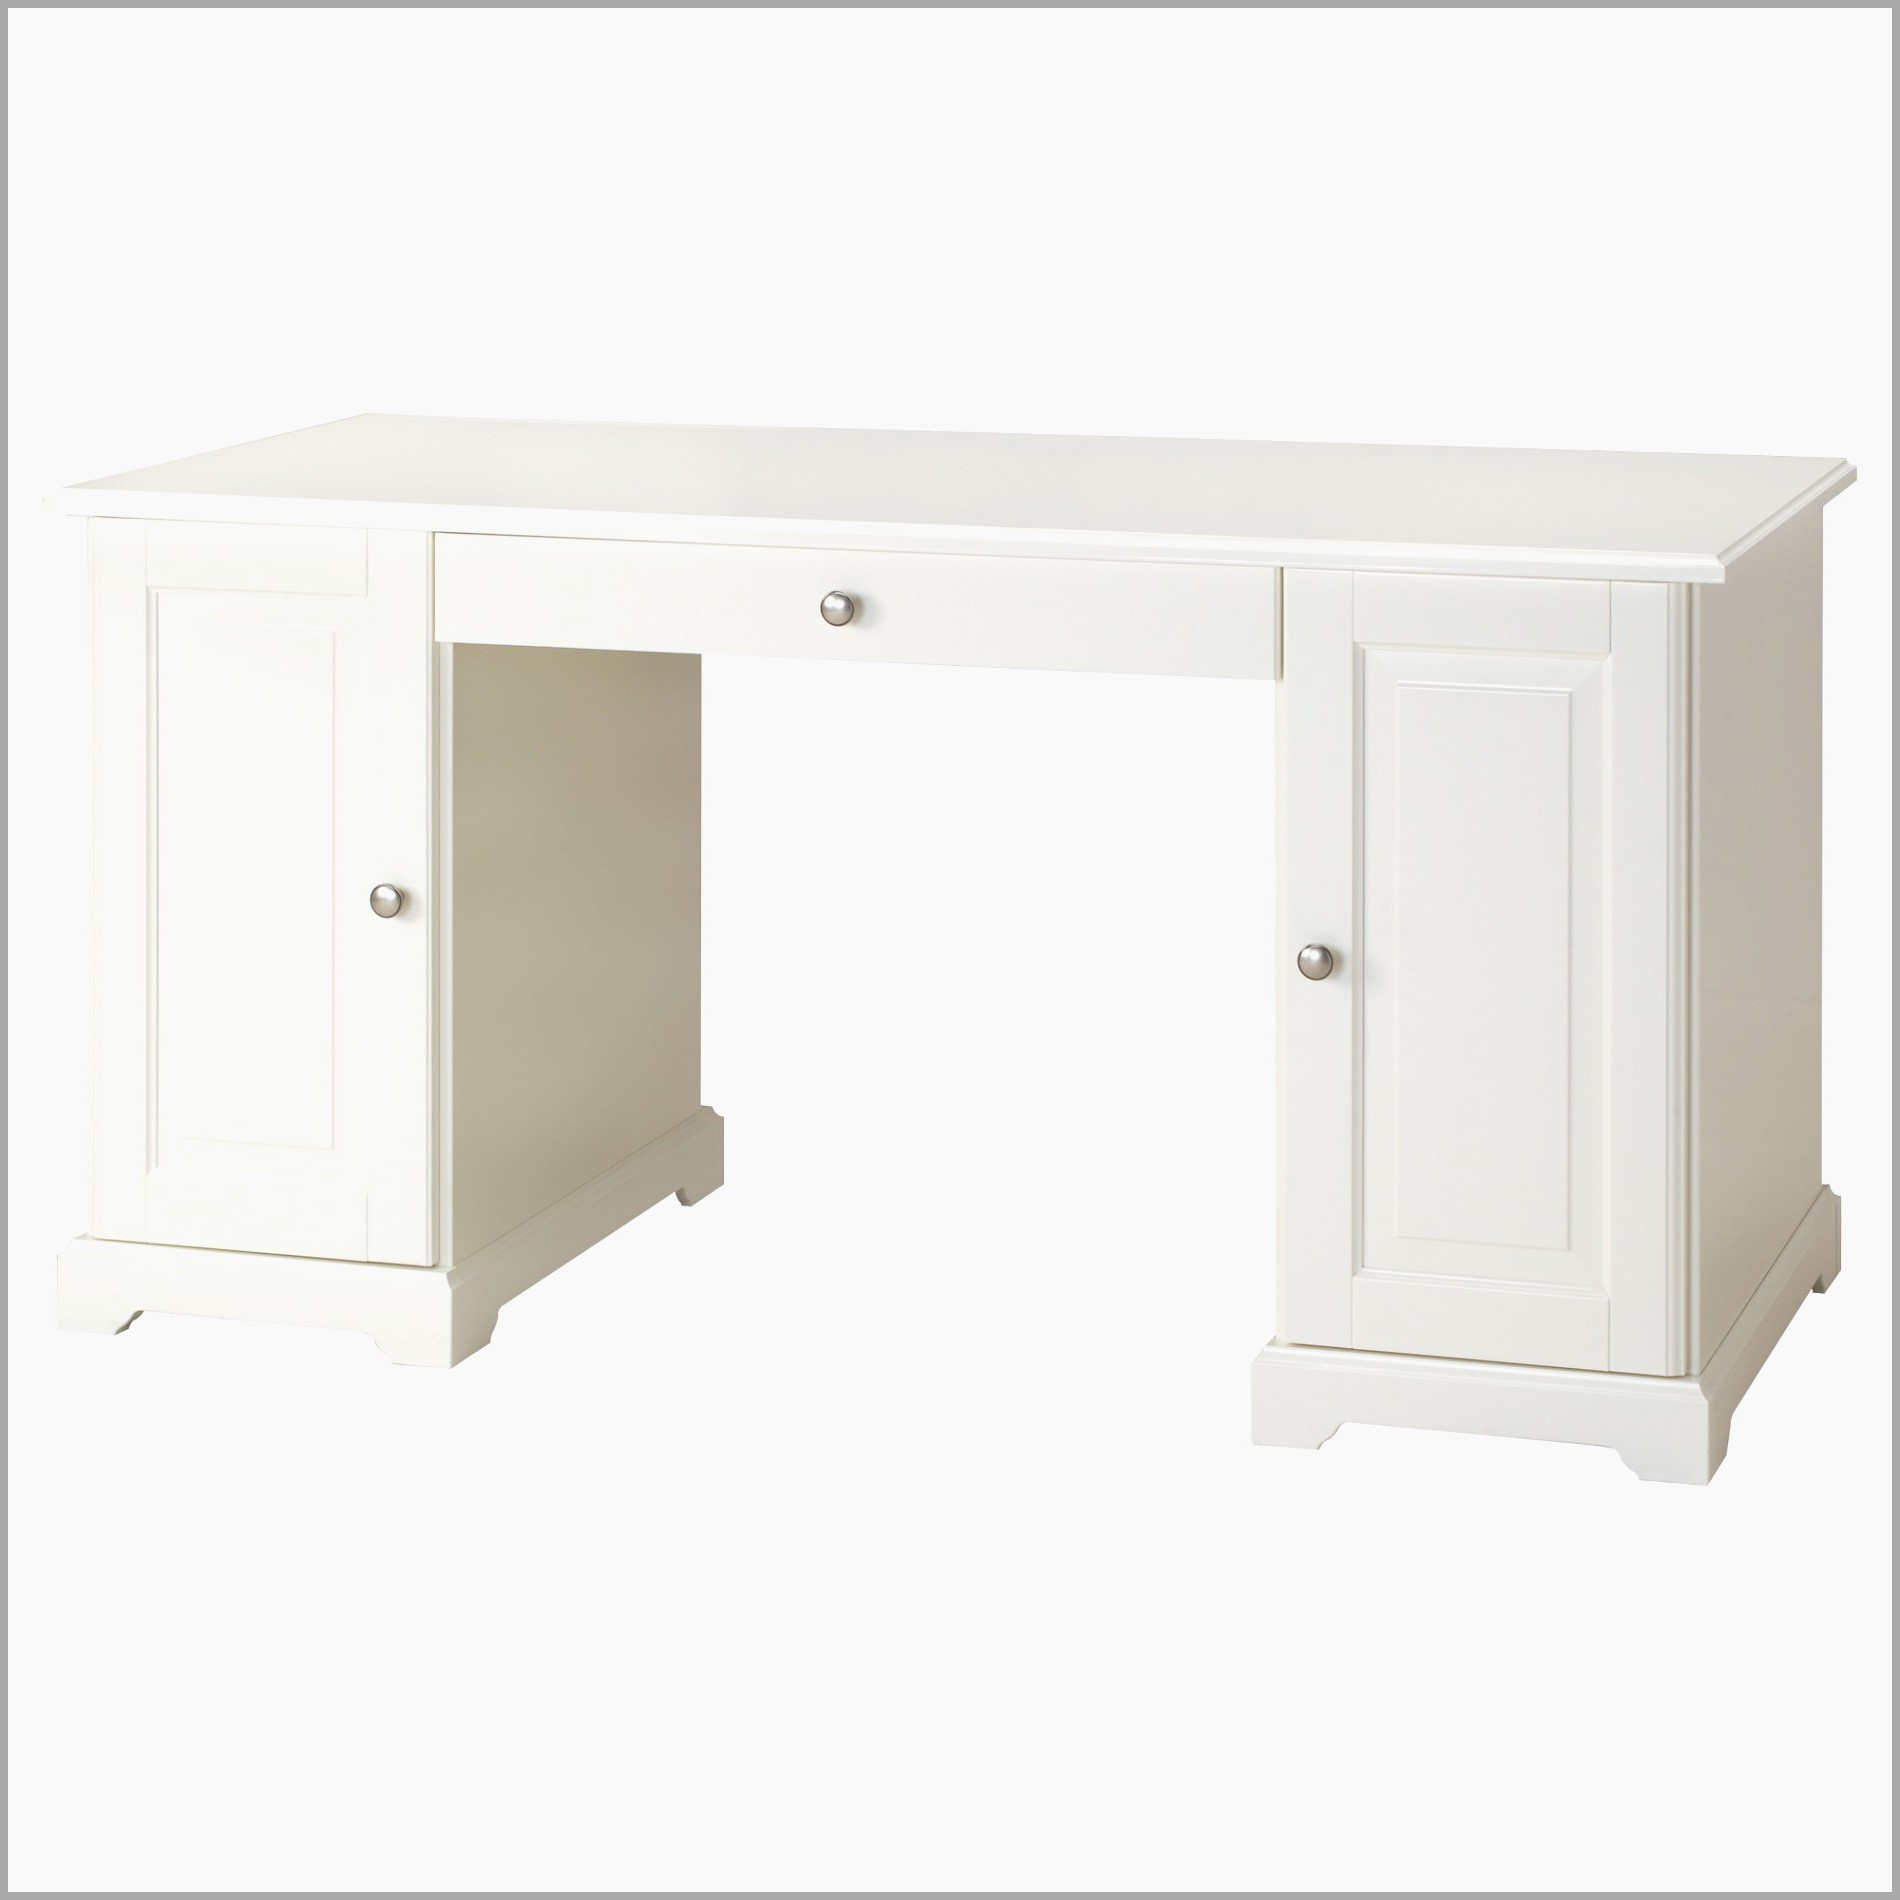 Conforama Noisy Le Grand Luxe Photos Conforama Armoire Blanche Lovely Armoire Deux Porte but Coulissante